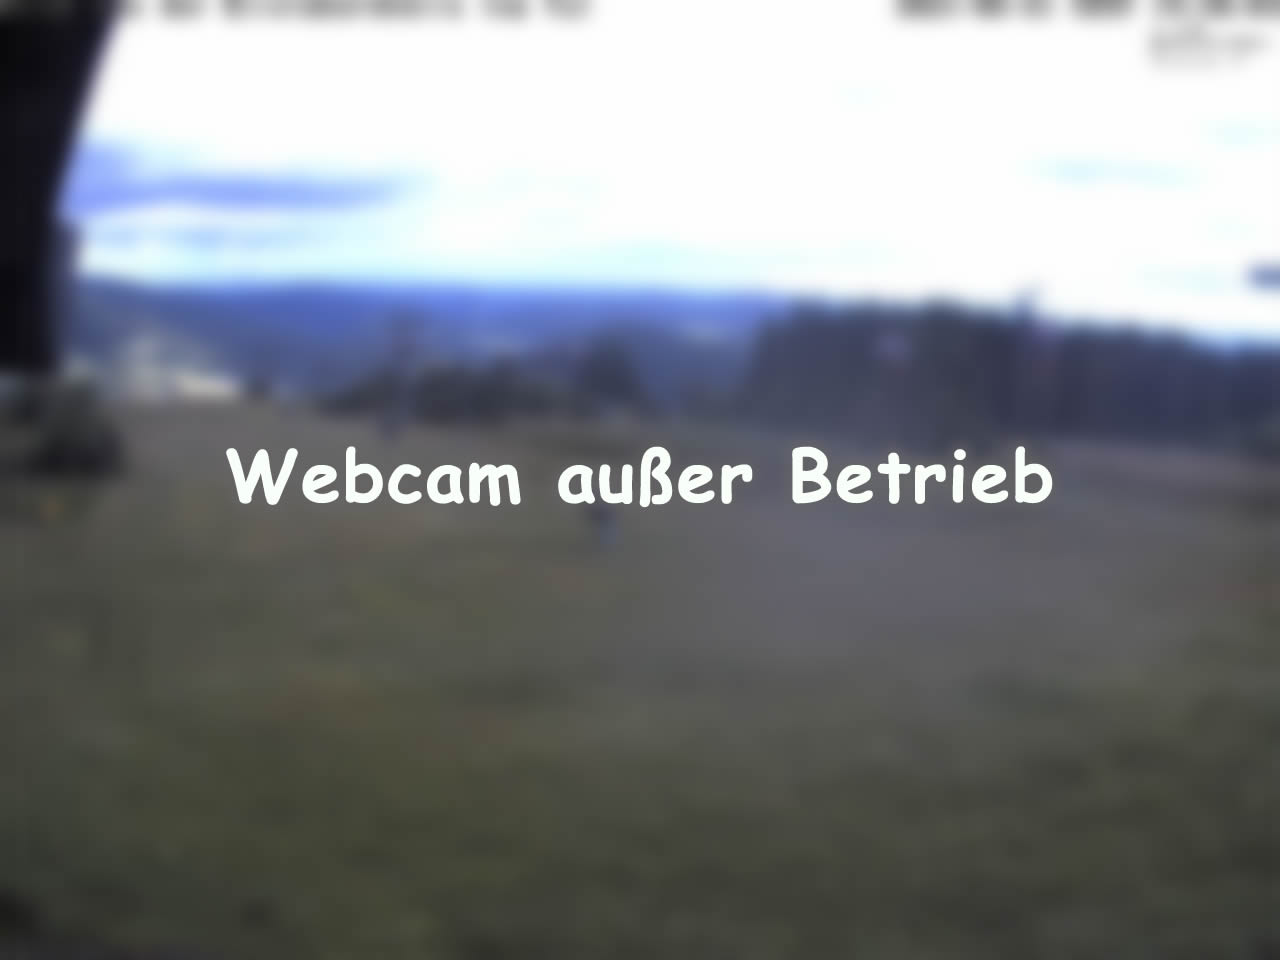 Hochheideturm Willingen Webcam